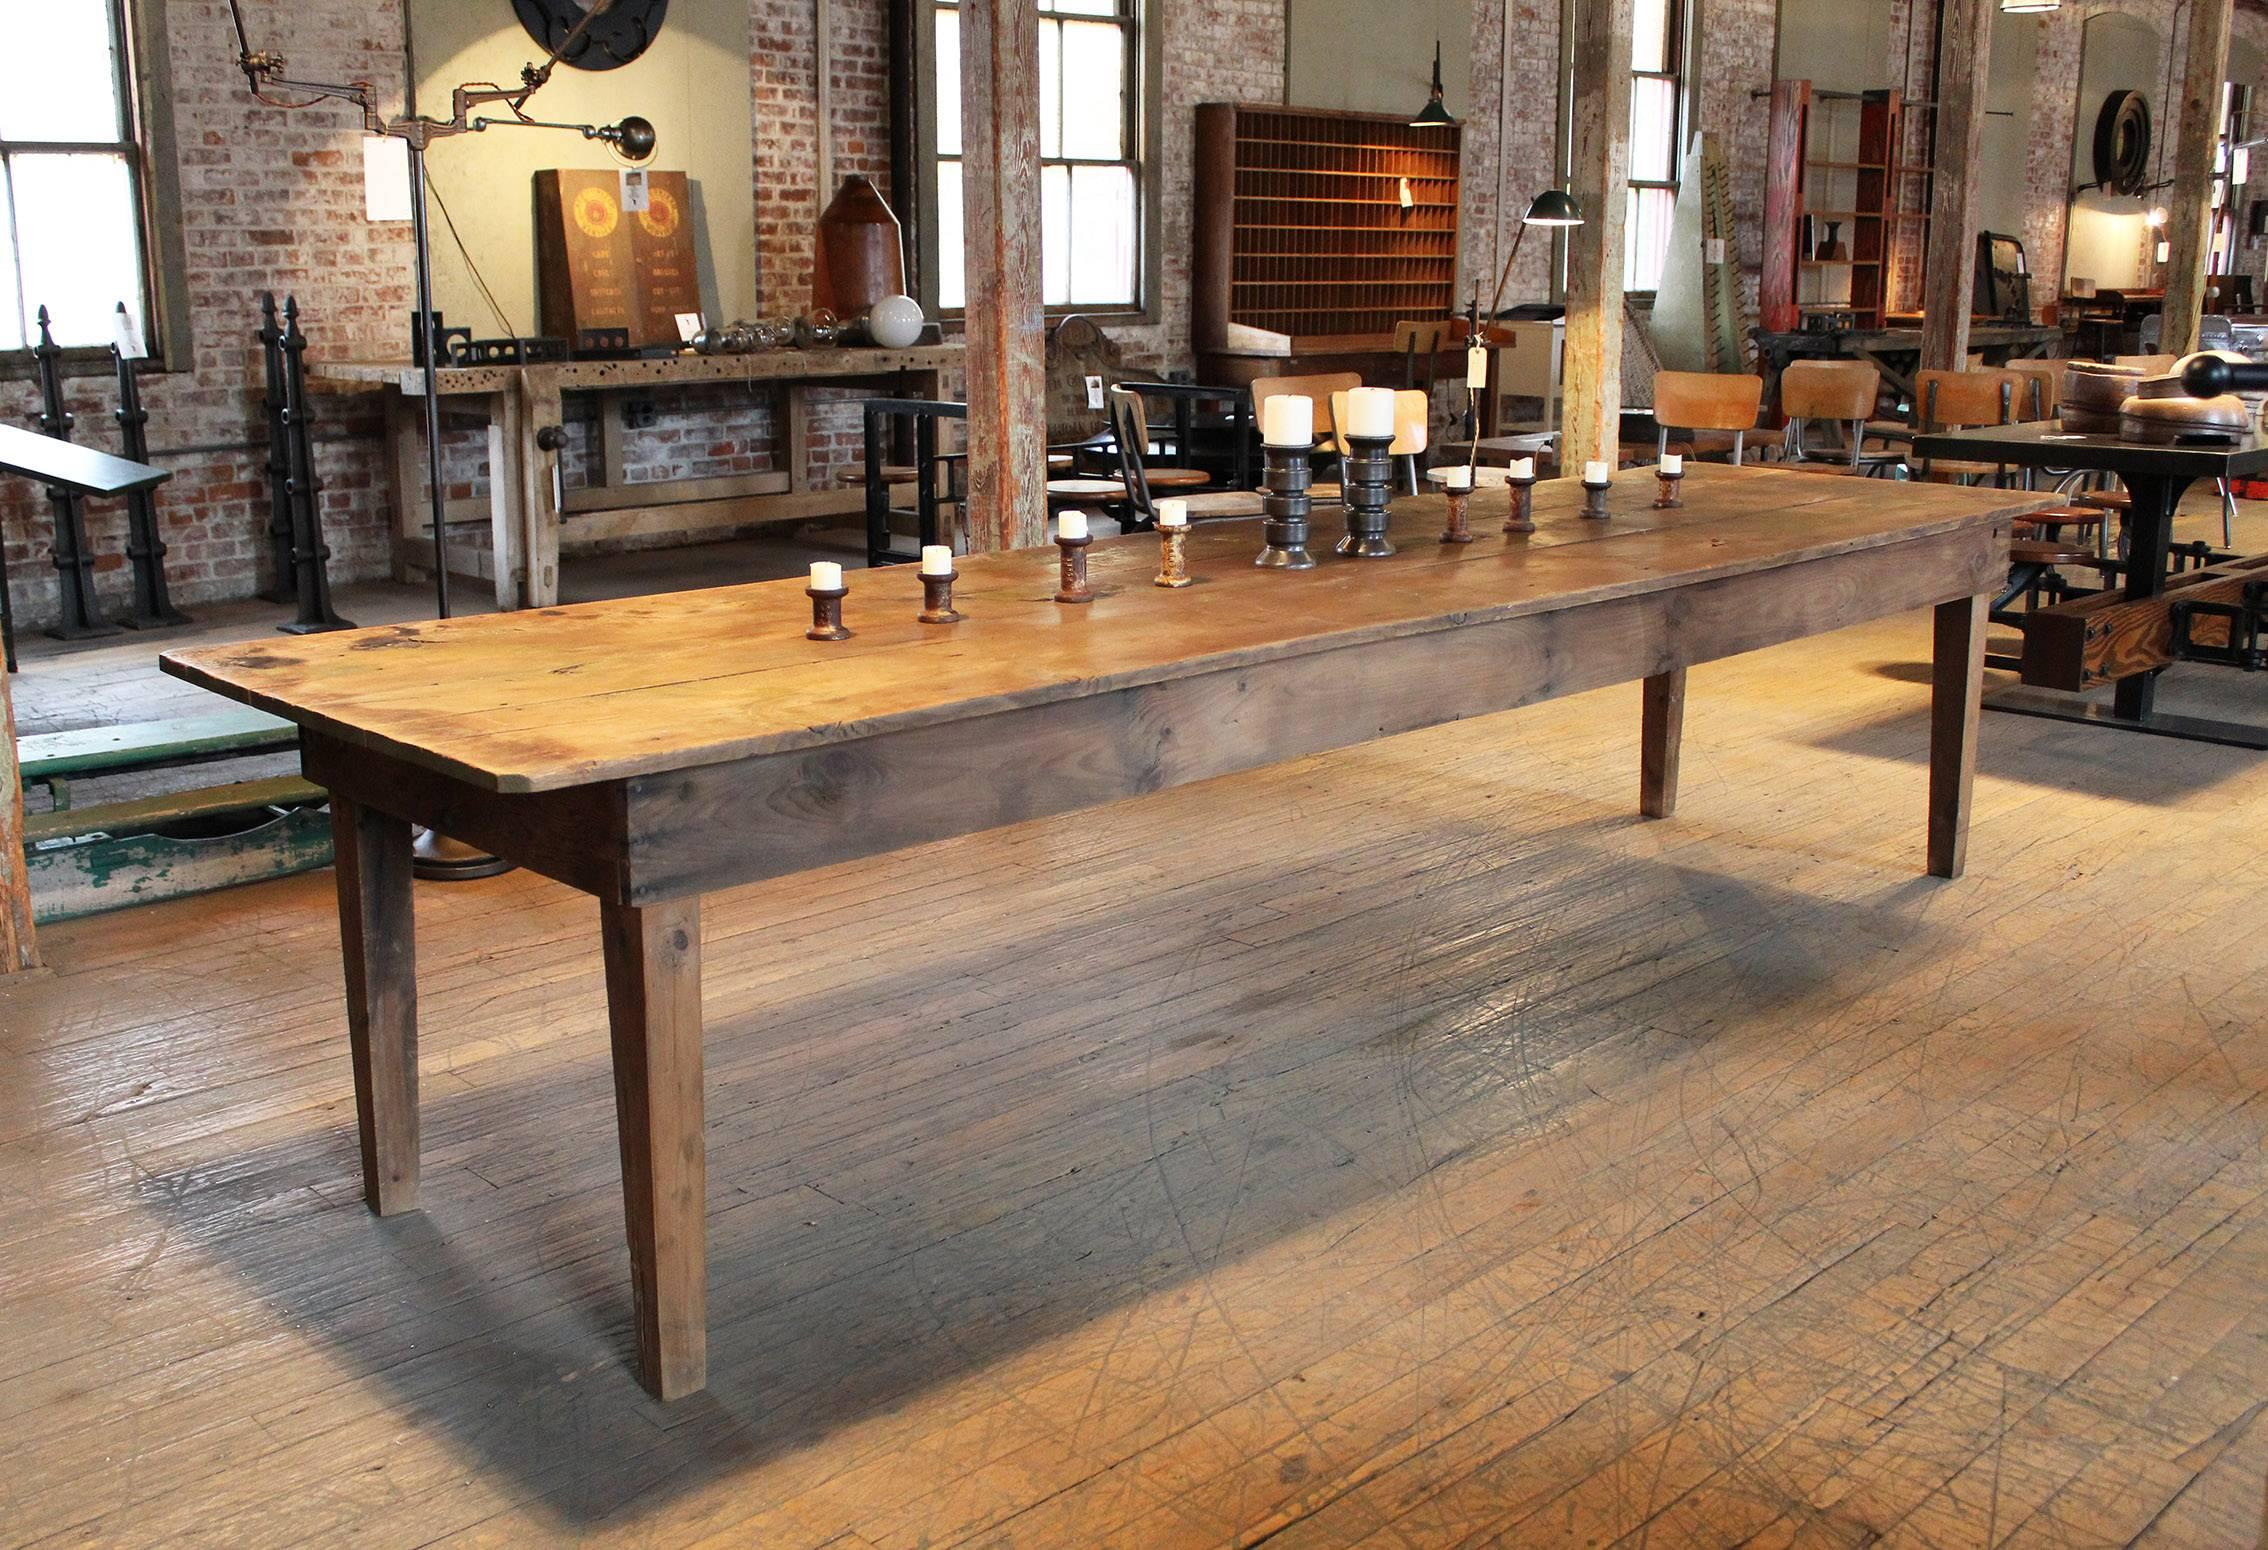 Rustic Wooden Pine Dining, Harvest, Farm Conference, Kitchen Table